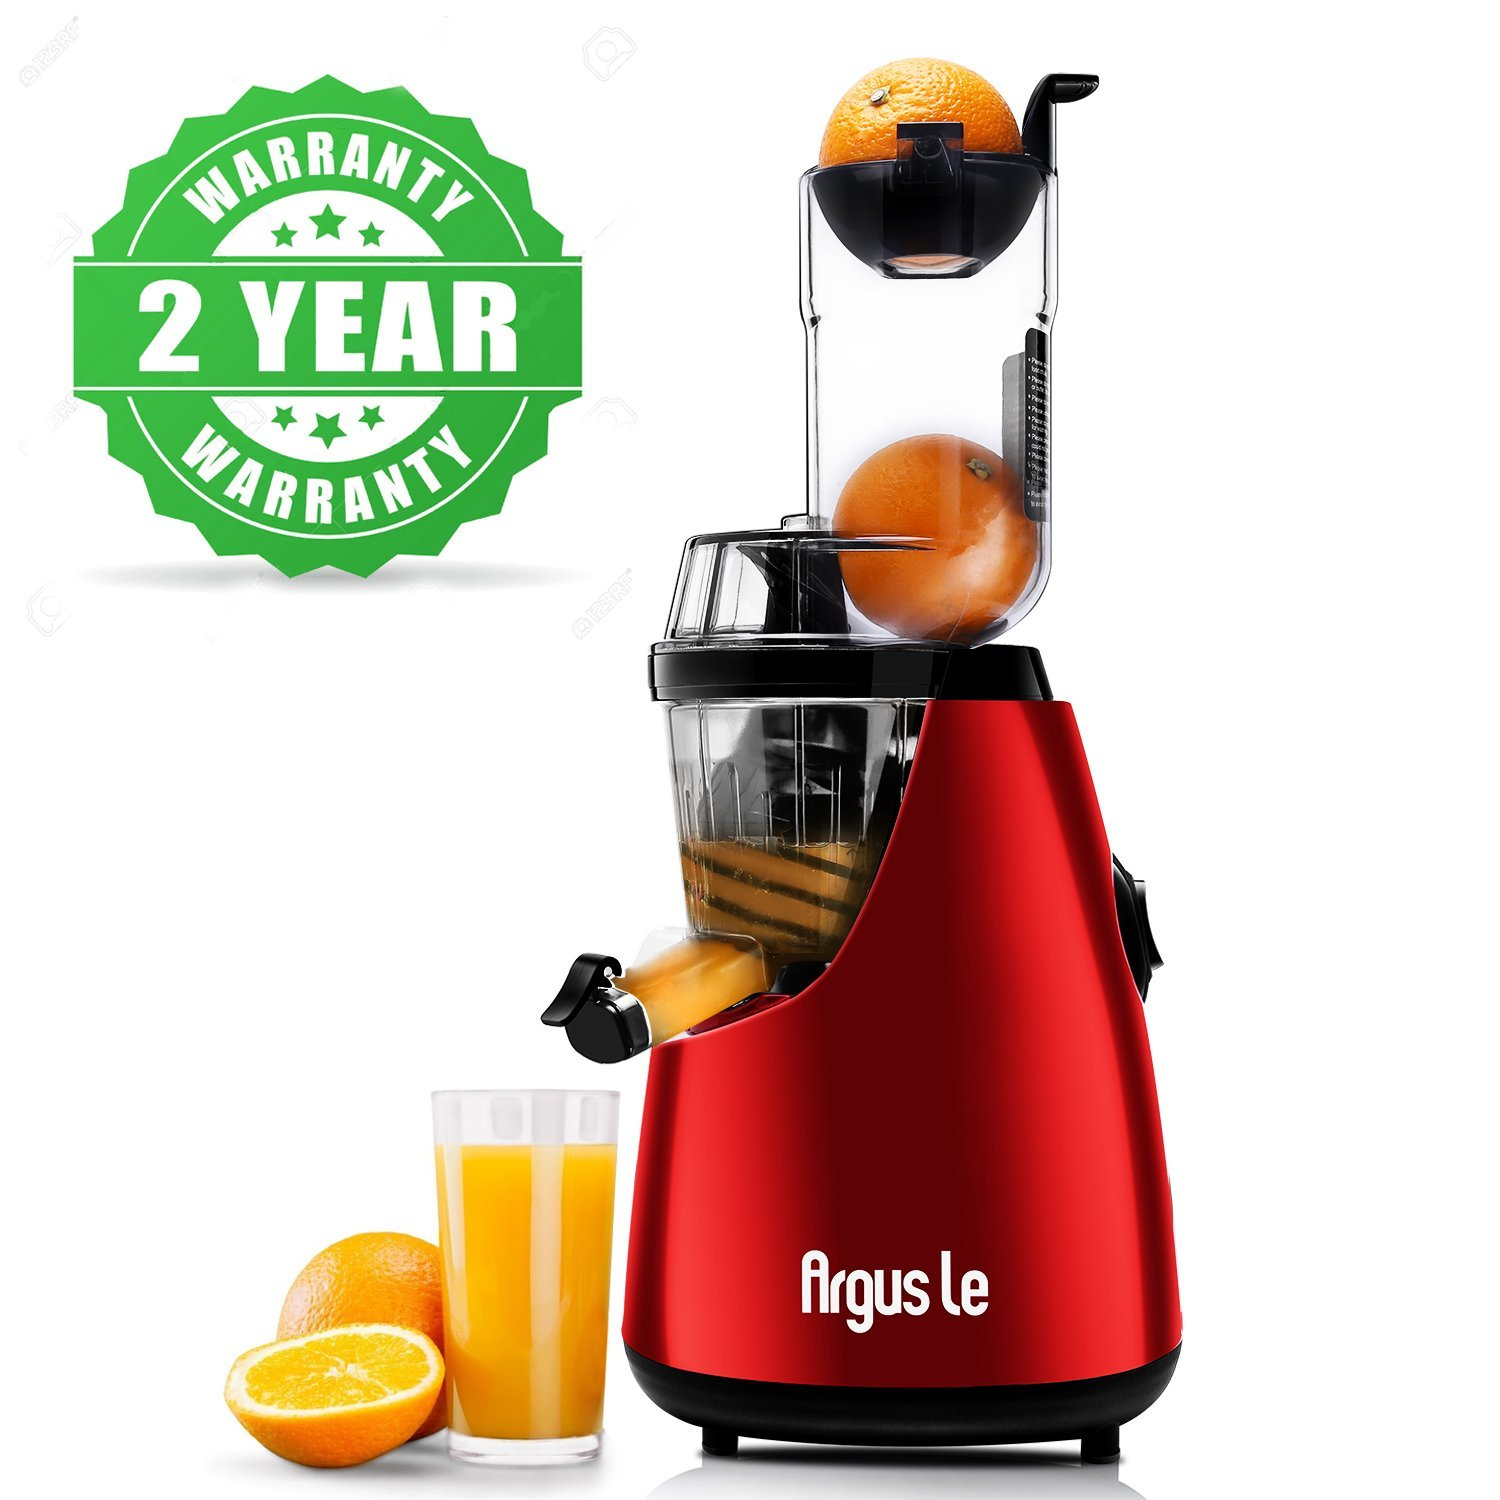 Argus Le Slow Masticating Juicer Reviews : Best Masticating Juicer 2018: 10 Best Juicers Reviews & Buying Guide